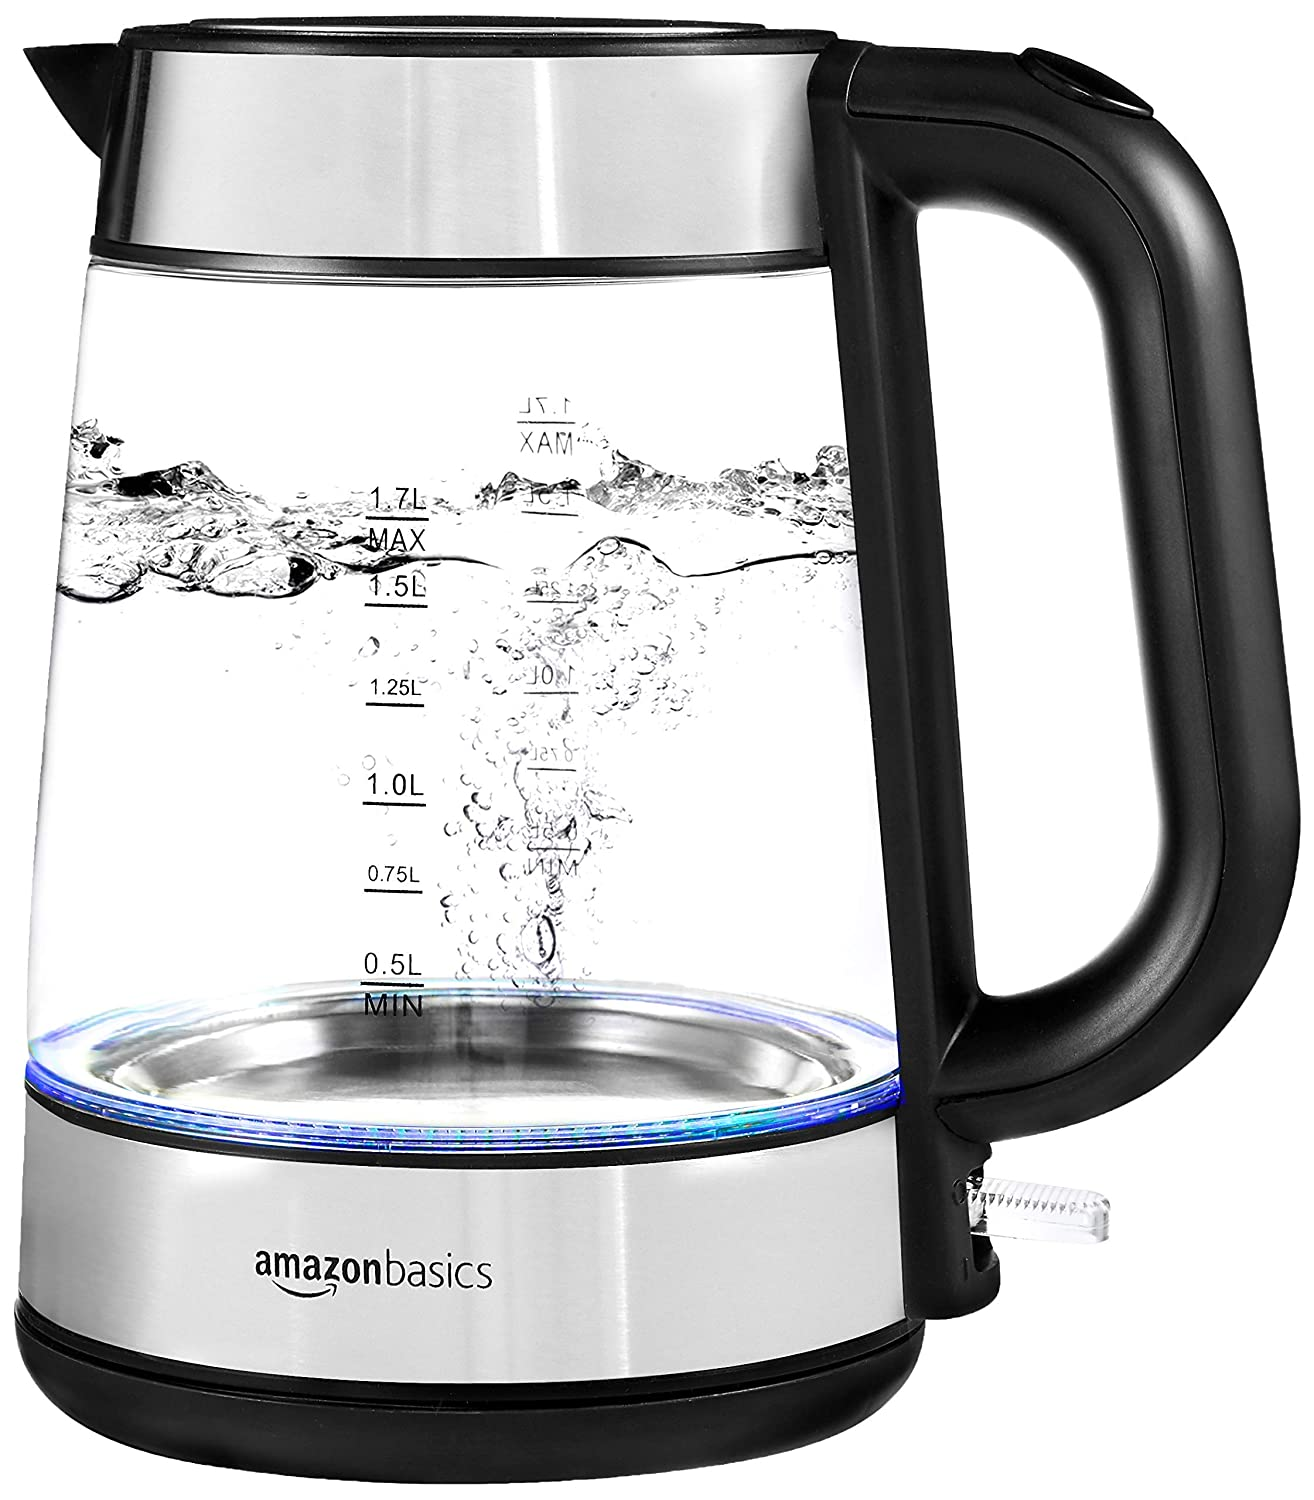 AmazonBasics Electric Glass and Steel Kettle - 1.7 Liter